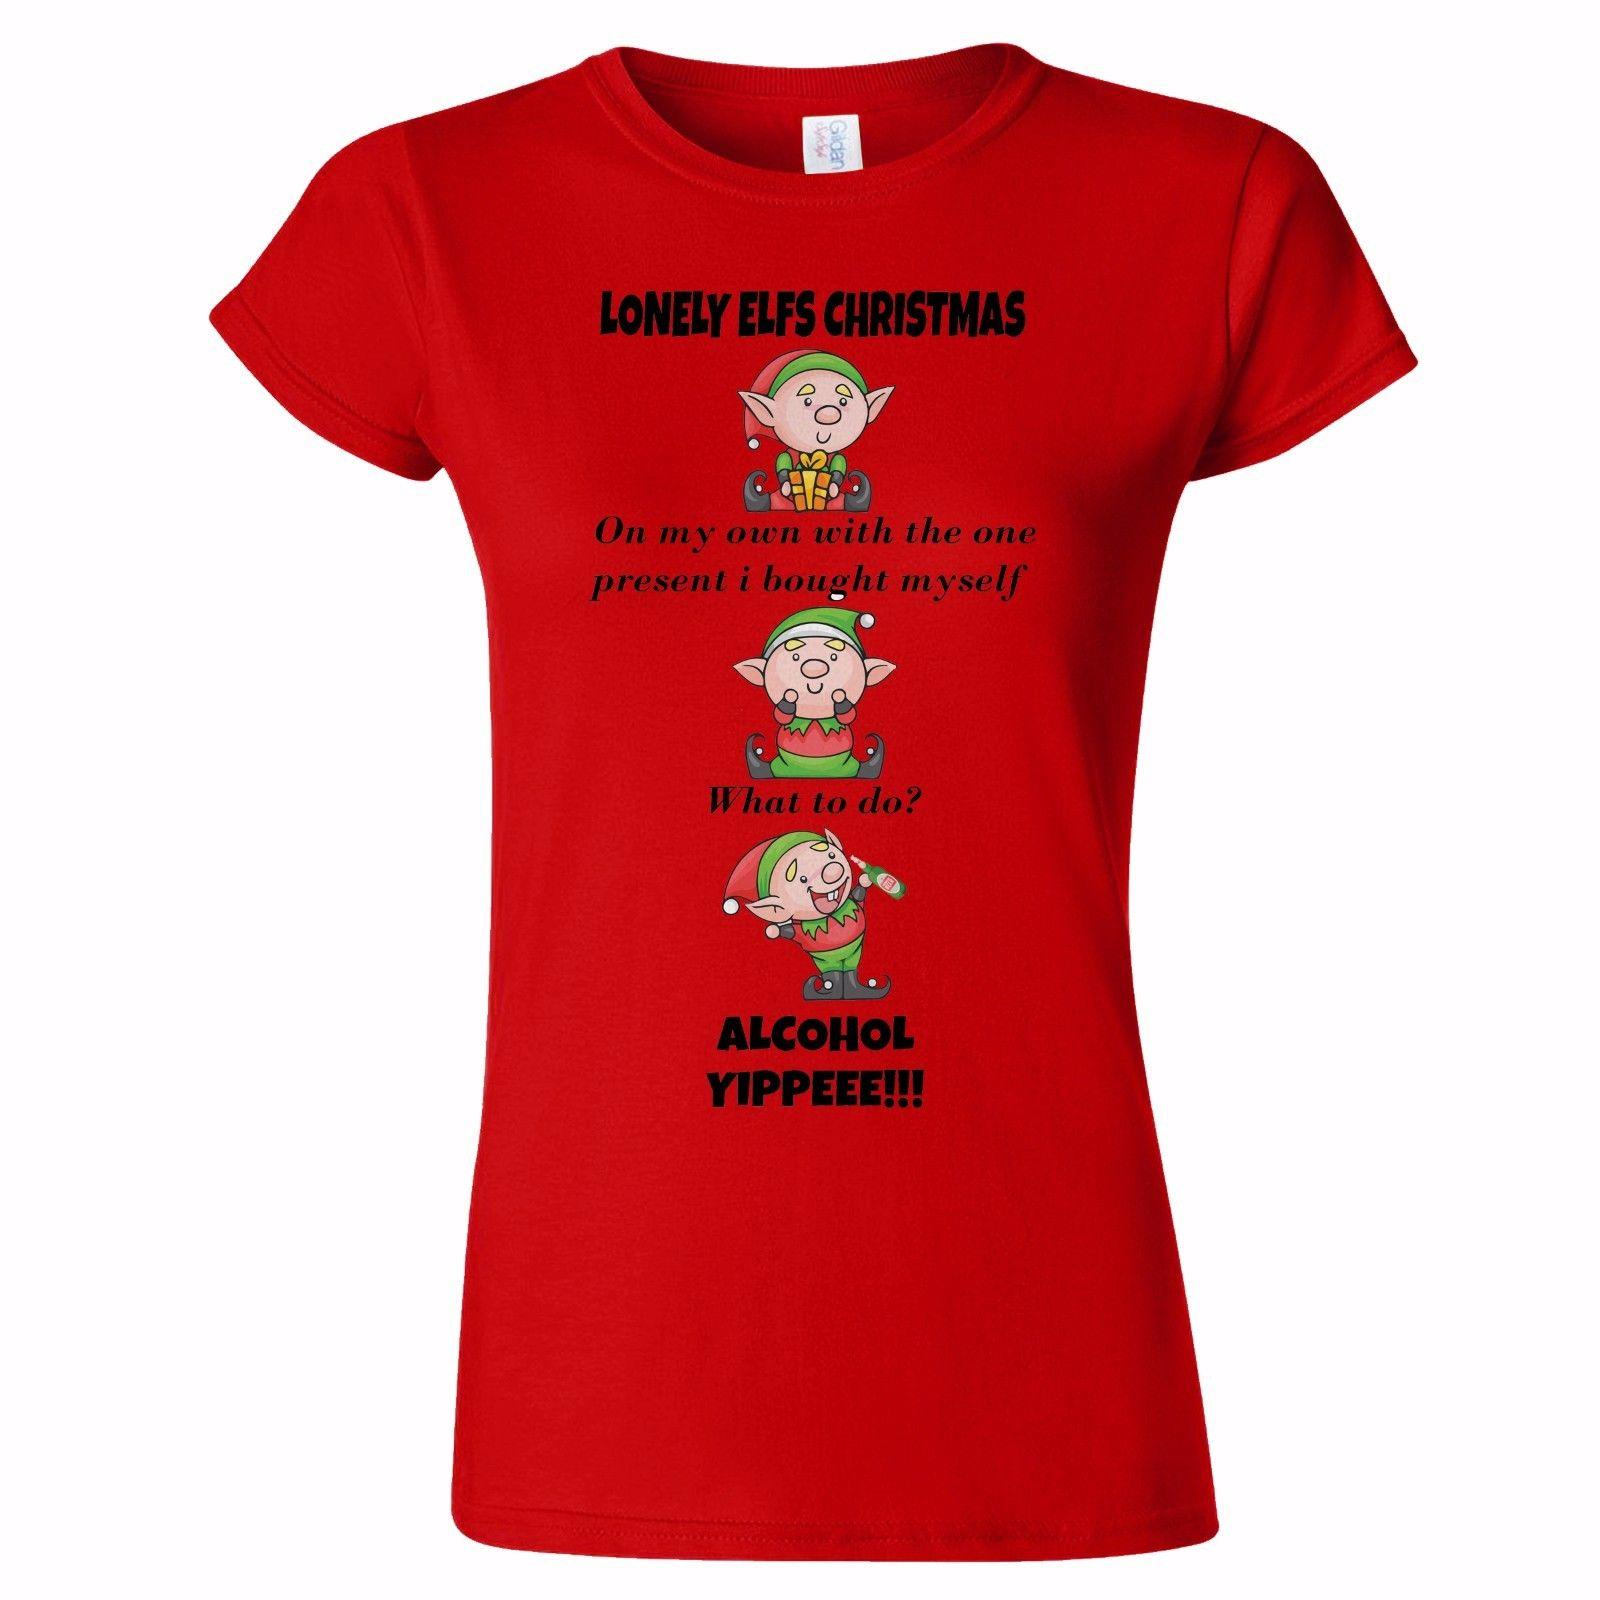 b788ea83 LONELY ELF CHRISTMAS FUNNY WOMENS T SHIRT PRESENT JOKE SANTA XMAS ON YOUR  OWN Daily T Shirts Printable T Shirts From Bangtidyclothing, $10.9|  DHgate.Com